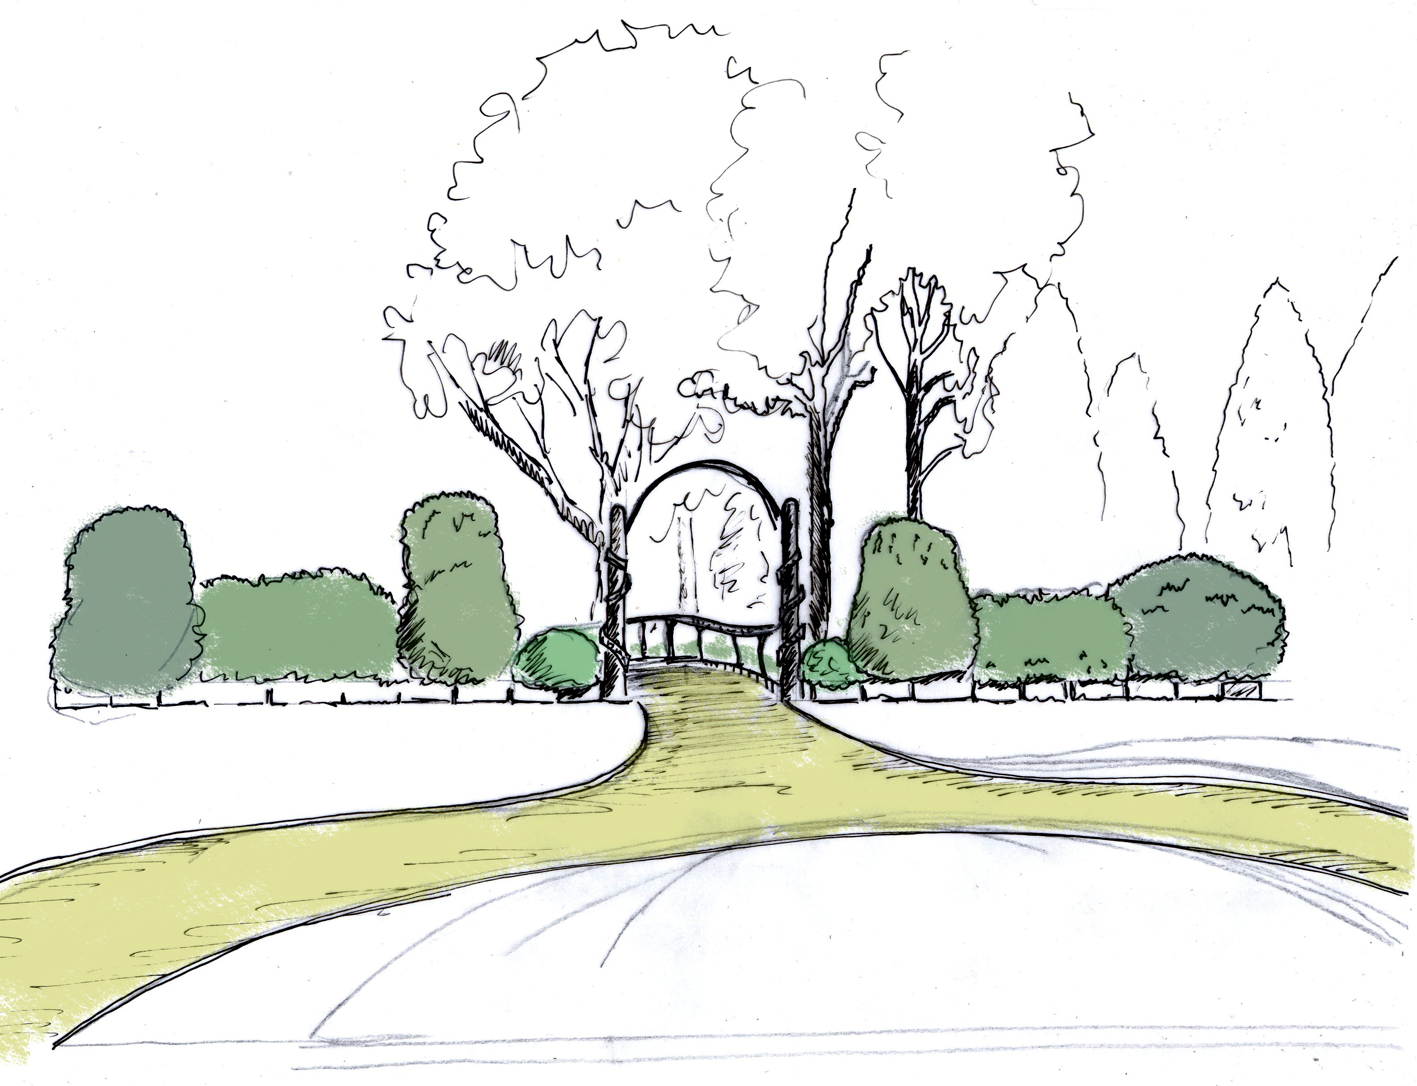 Eves & Lewis Landscape Design Concept for Whitworth Hall Hotel